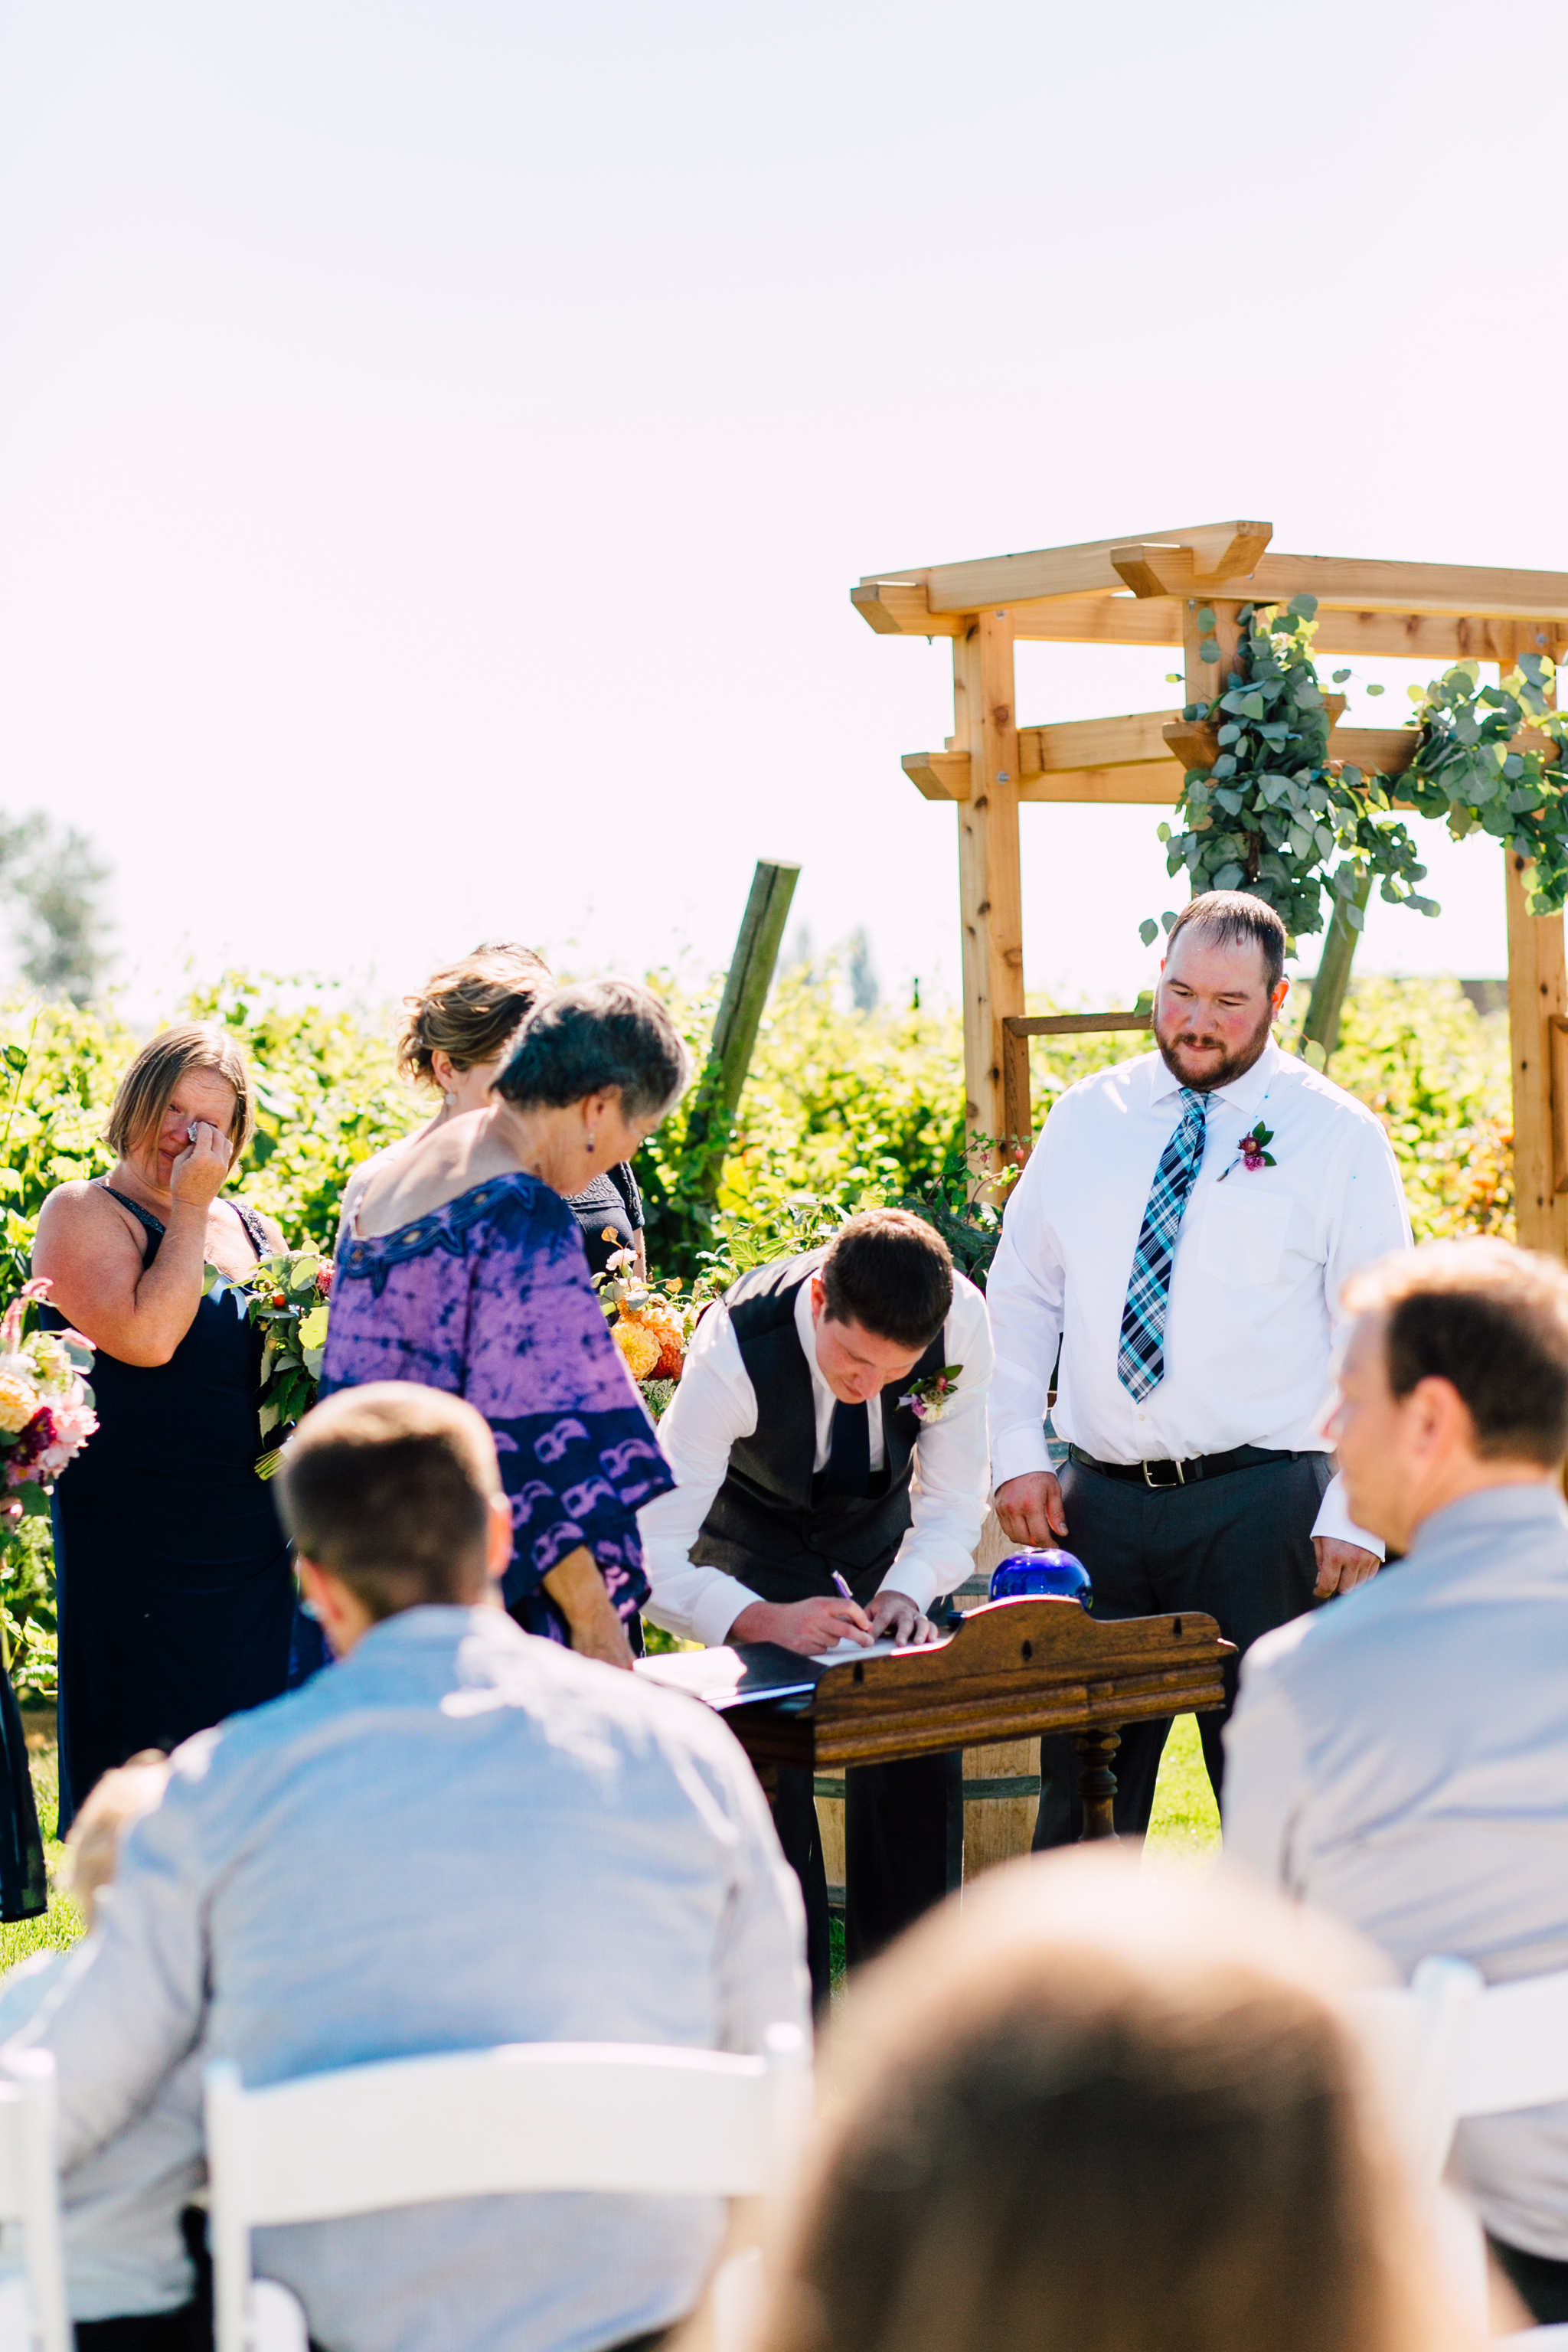 059-bellingham-wedding-photographer-samson-winery-katheryn-moran.jpg